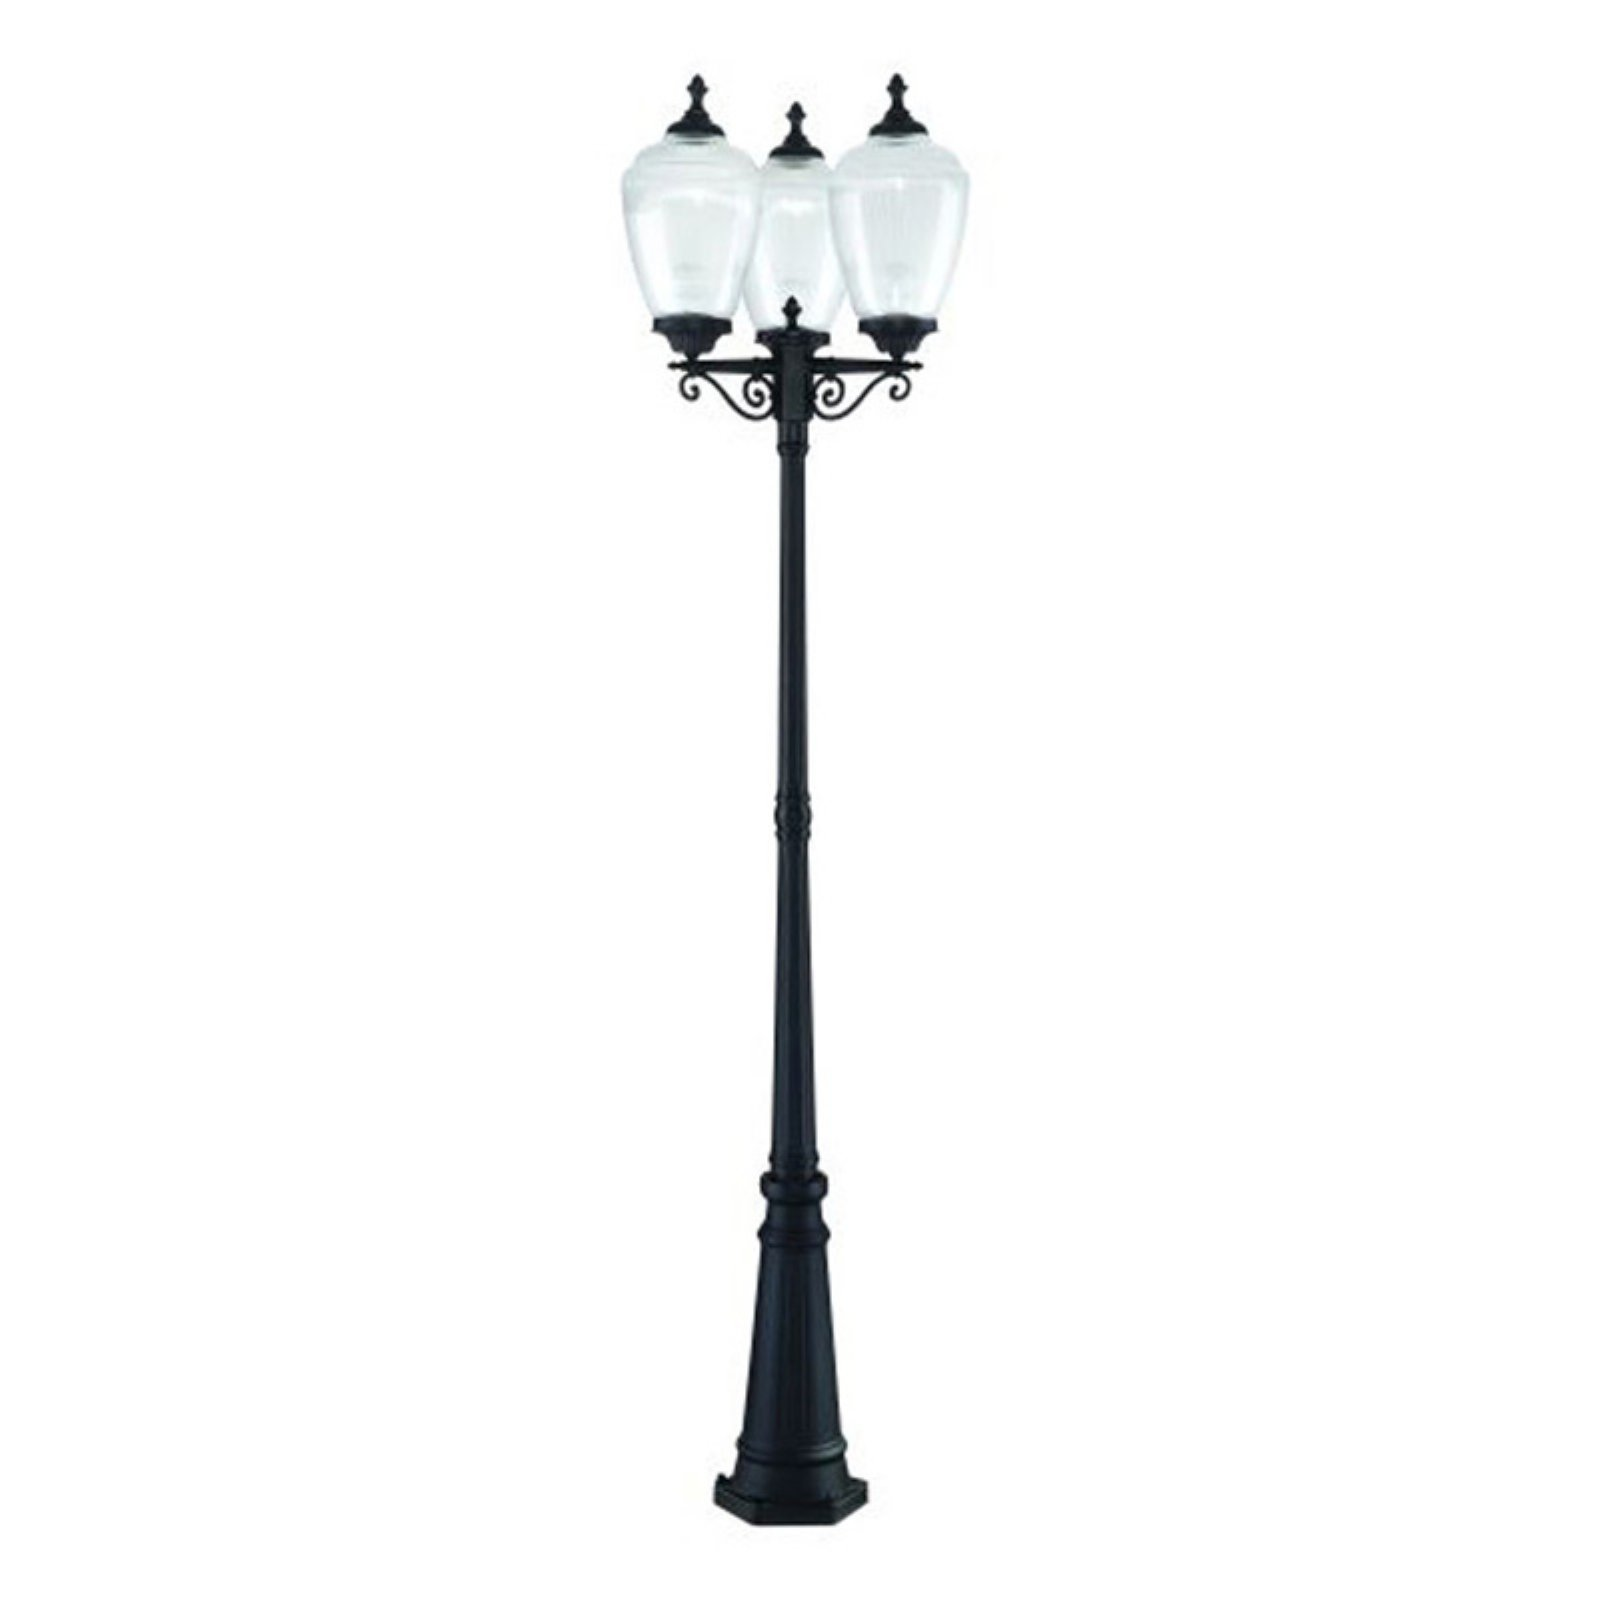 Acclaim Lighting Acorn 3 Head 3 Light Outdoor Post Combination